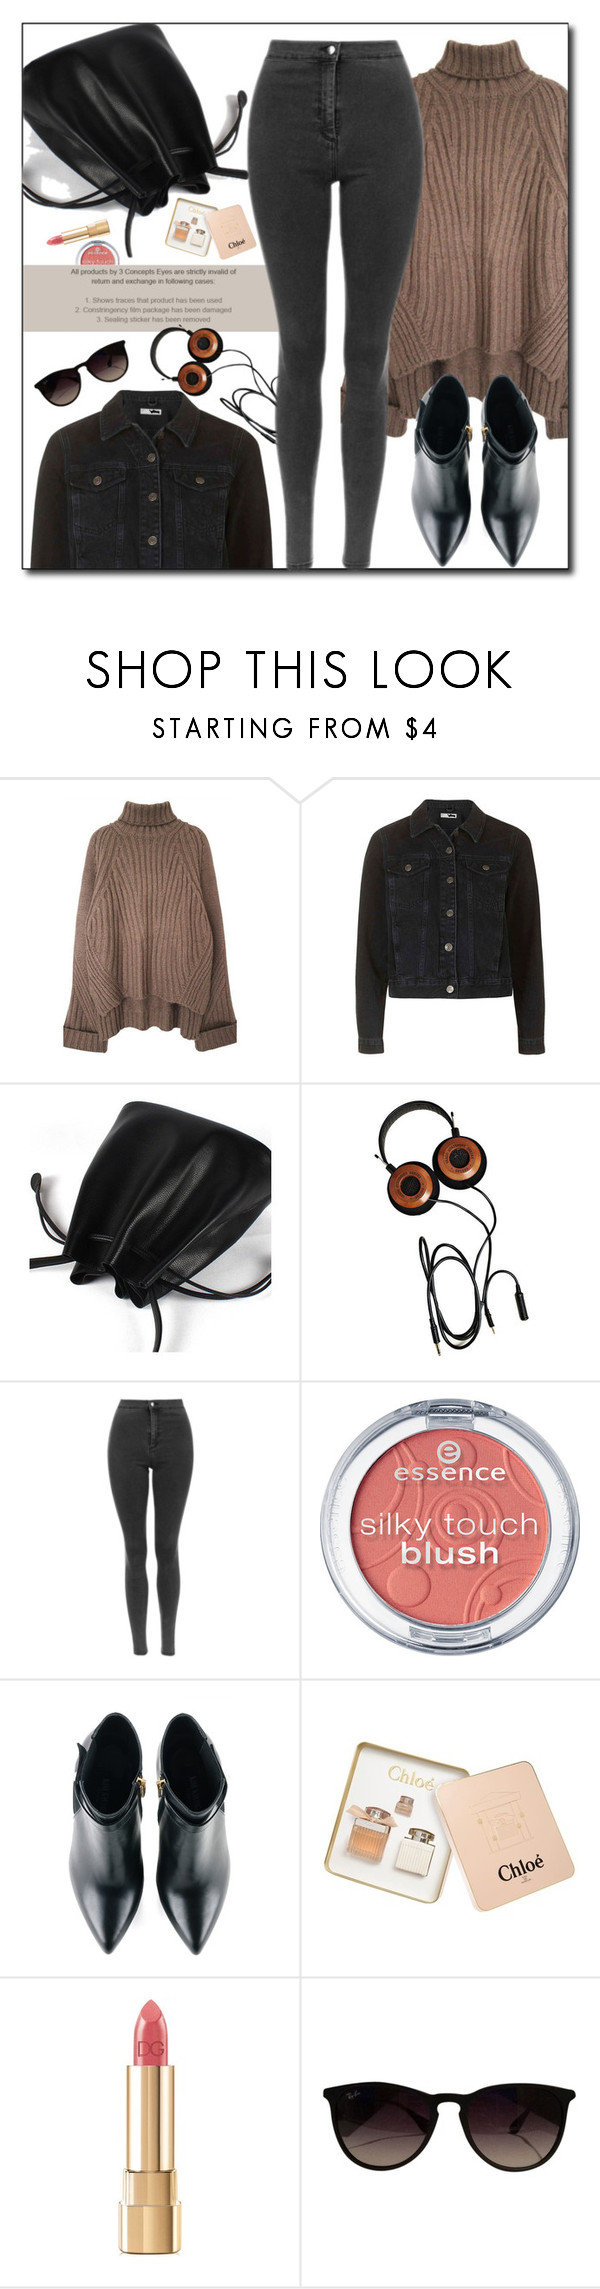 """Good Style"" by genuine-people ❤ liked on Polyvore featuring Kim Kwang, Chloé, Dolce&Gabbana and Ray-Ban"